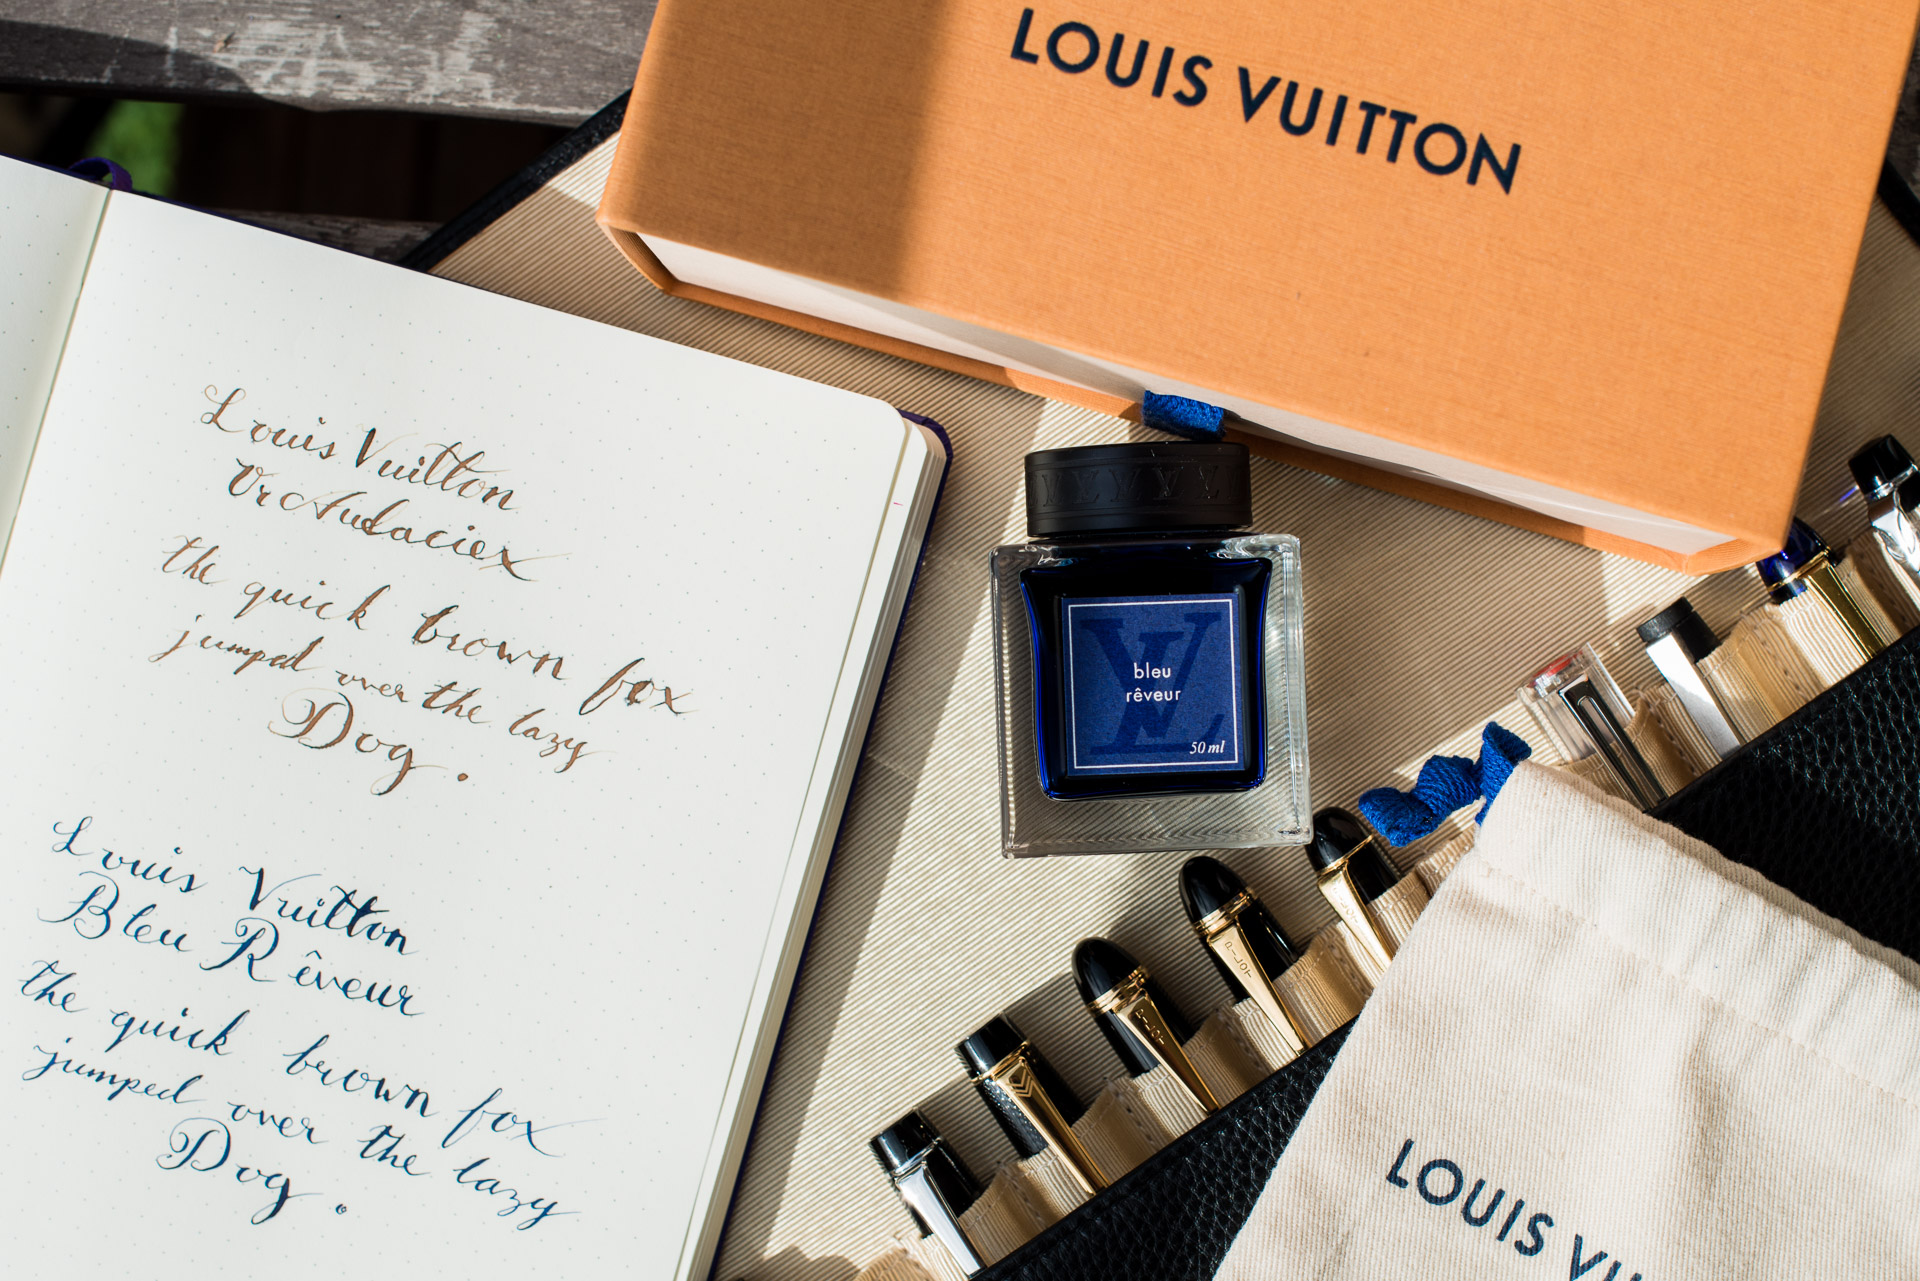 Louis Vuitton Bleu Reveur